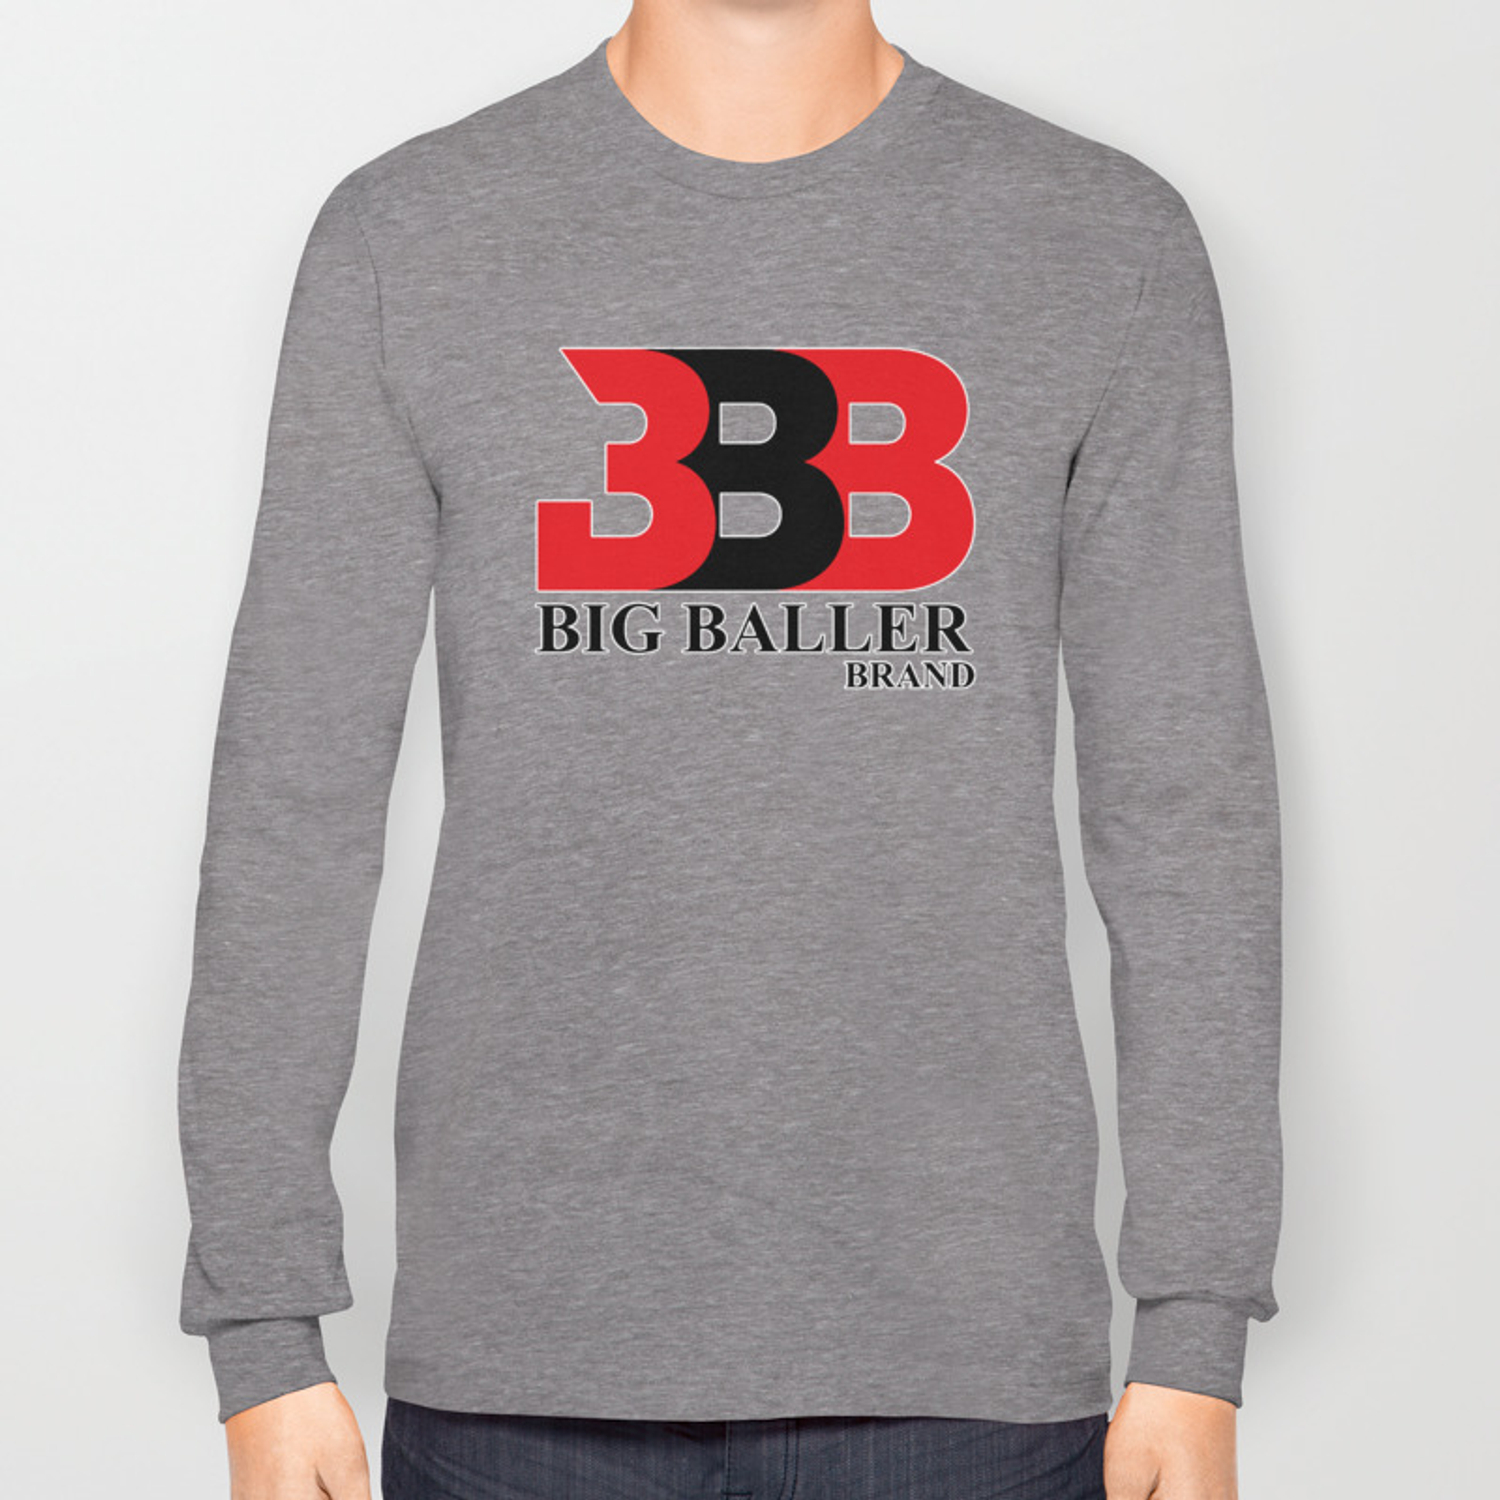 fa6e61d74bce Big Baller Brand in red black Long Sleeve T-shirt by aristotelles   Society6